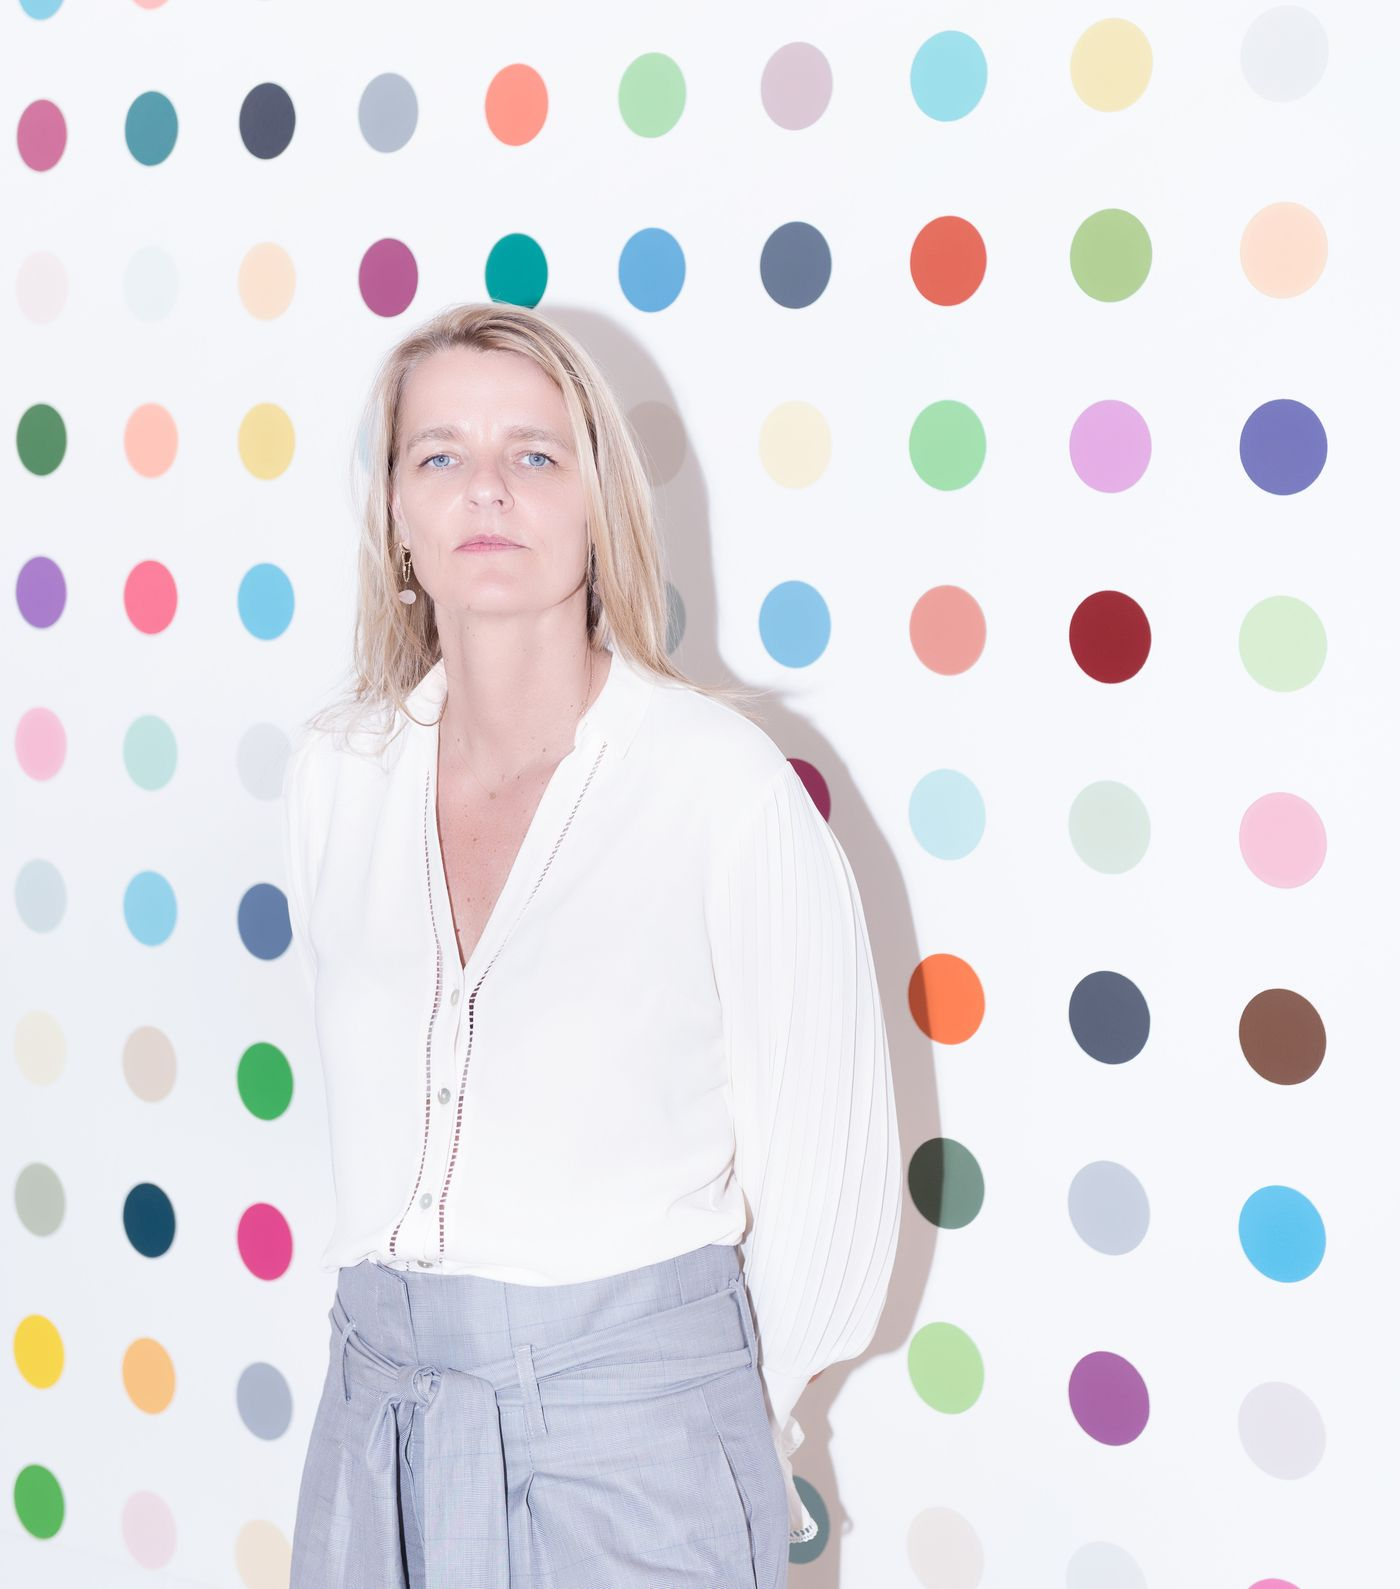 Whitewall magazine sat down with Miety Heiden, Head of Private Sales, to discuss Phillips' expansion beyond auction and this summer's New York selling exhibition, 'NOMEN.'